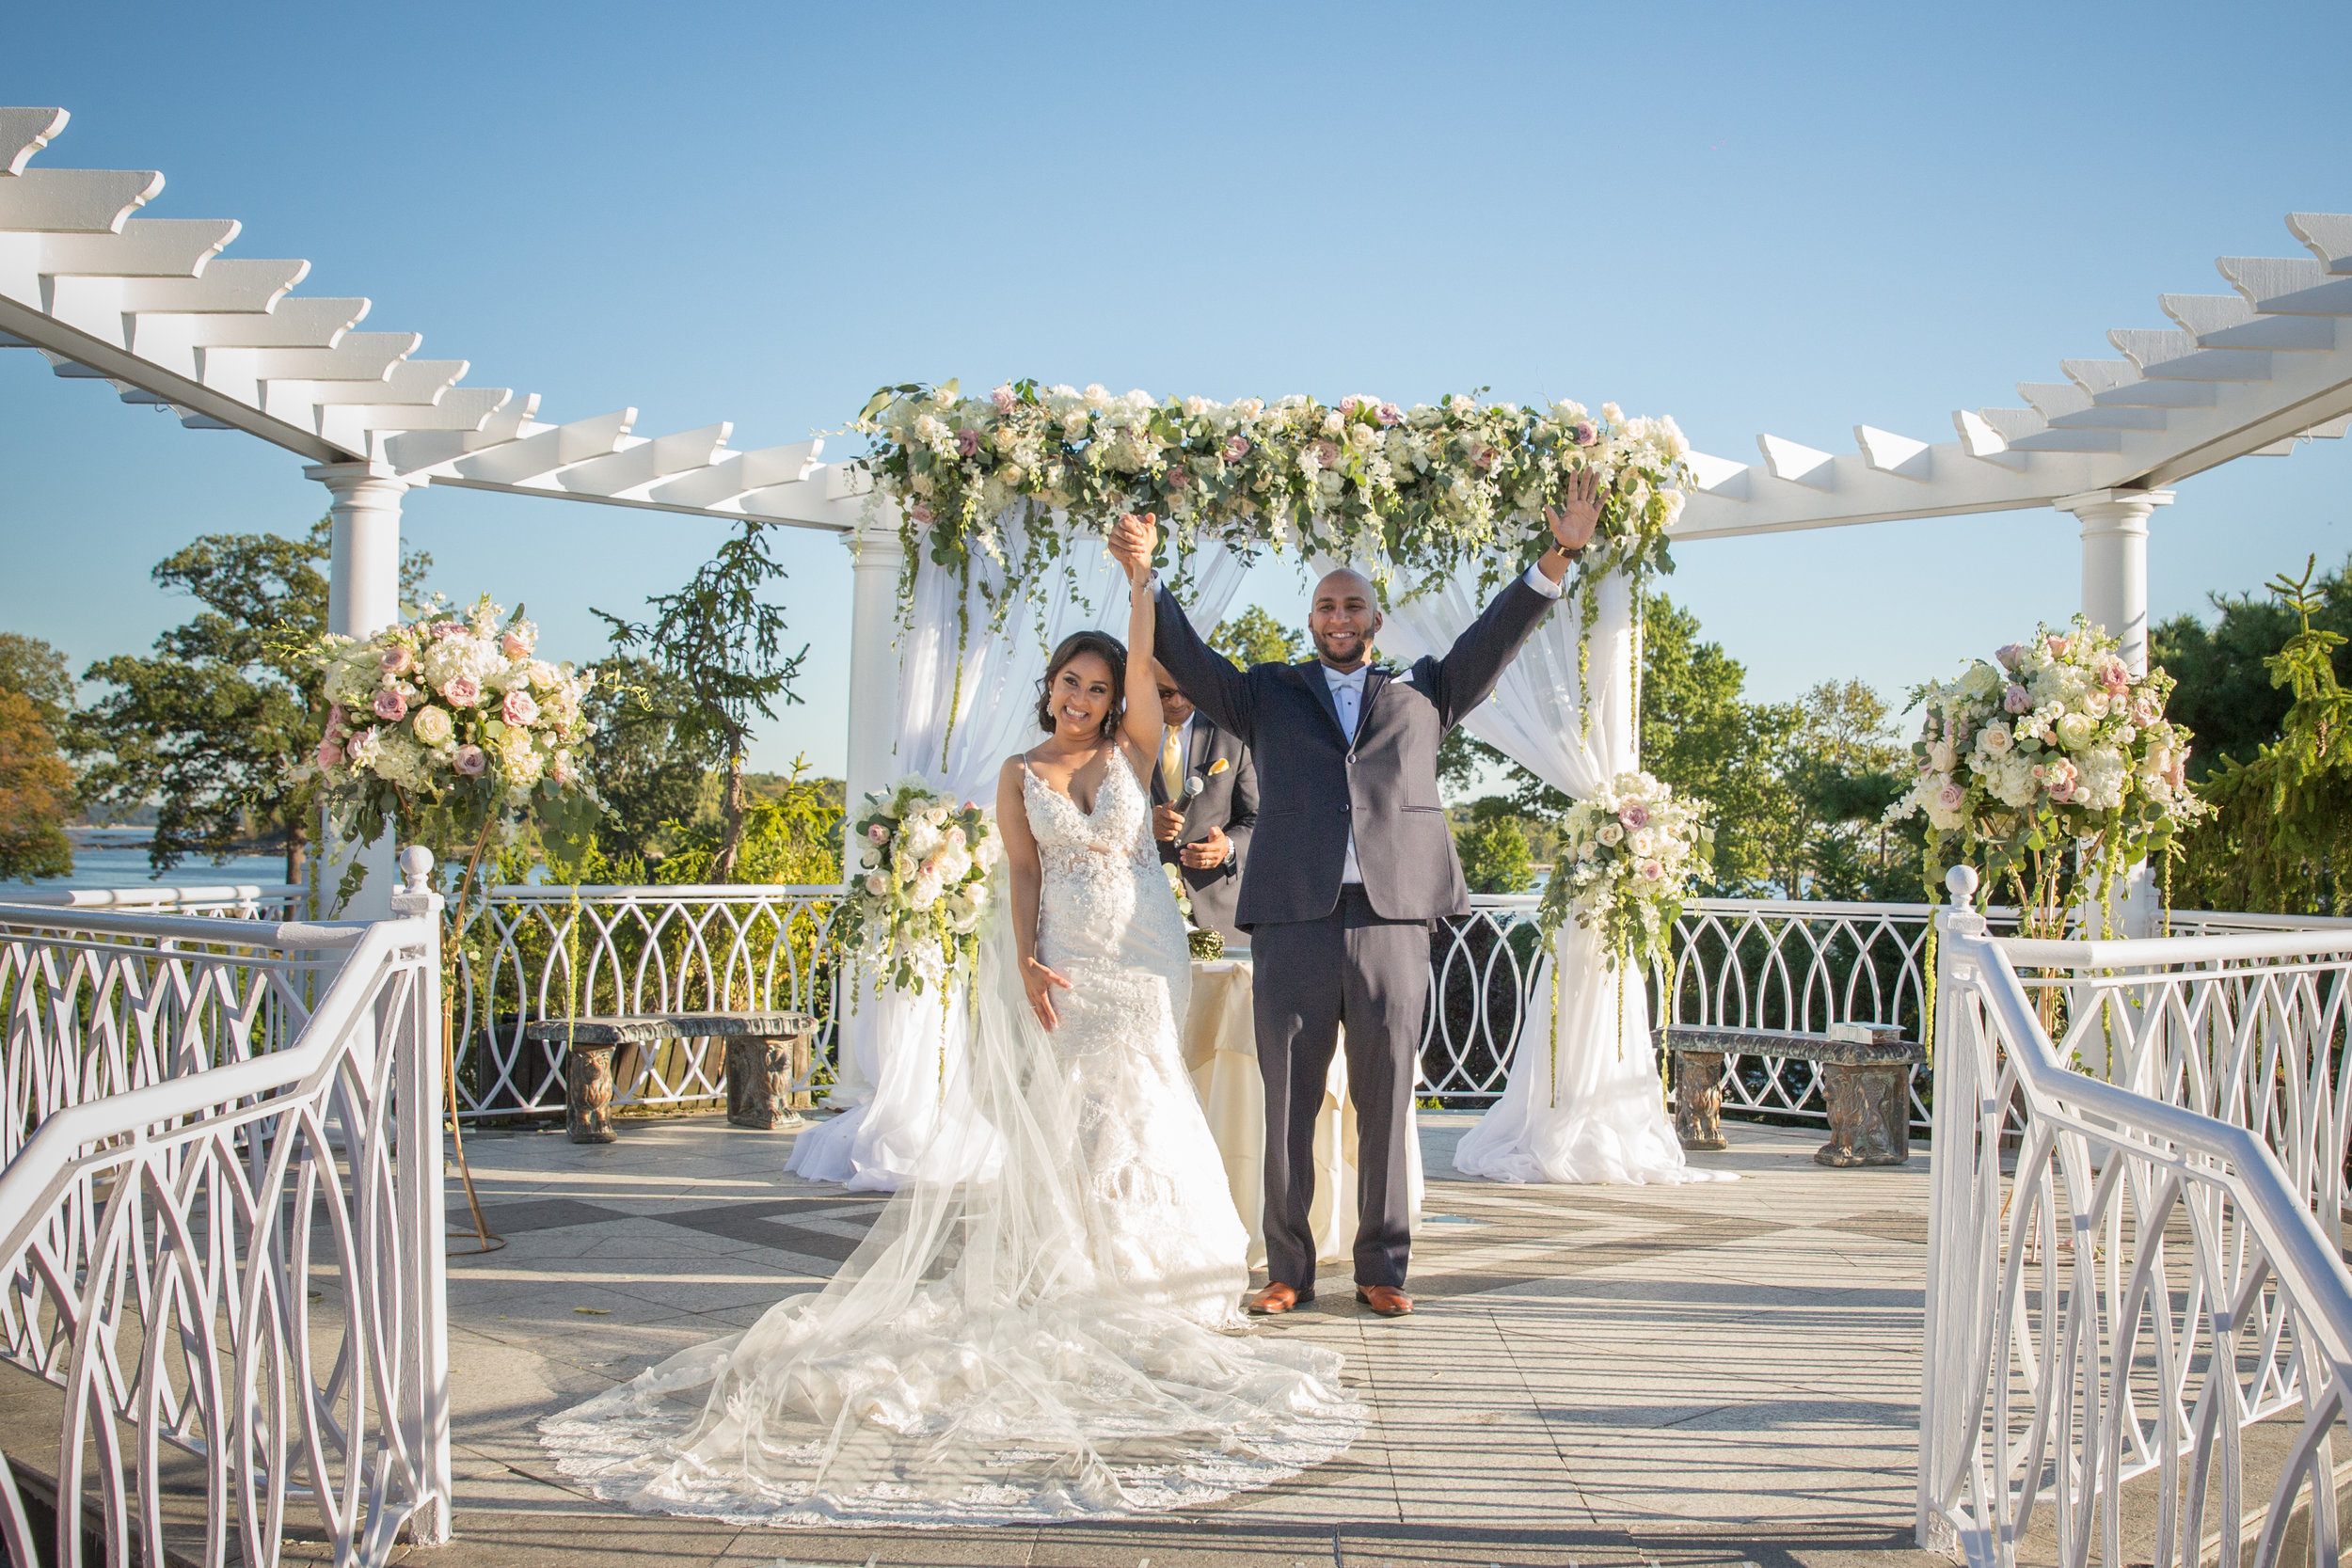 vip-country-club-bride-and-groom-wedding-day-photographer